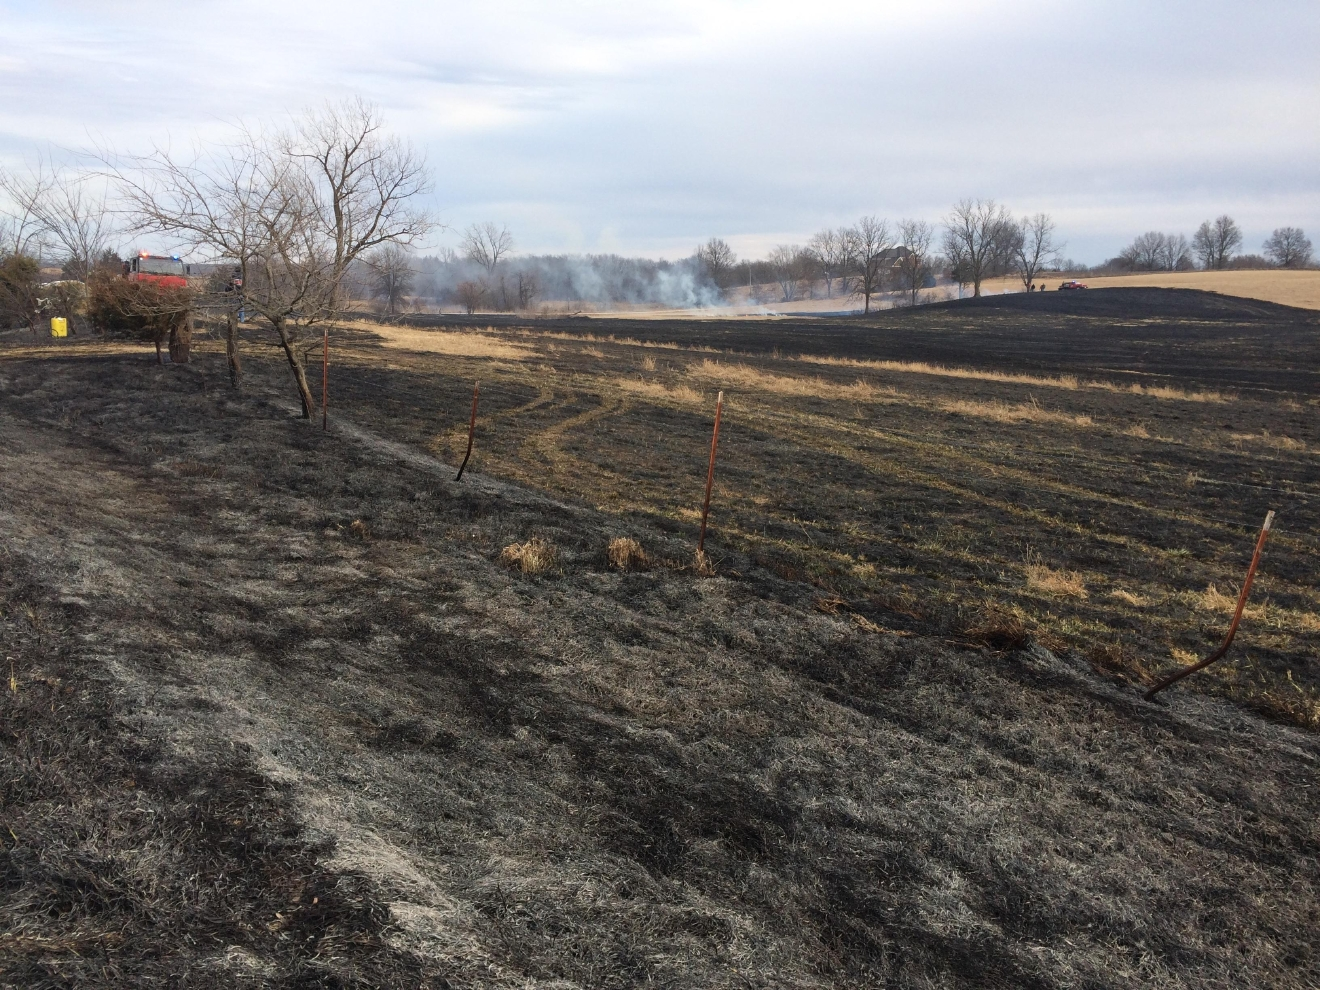 Fire burns several acres of farmland (KTVO/Jacqueline Schutte)